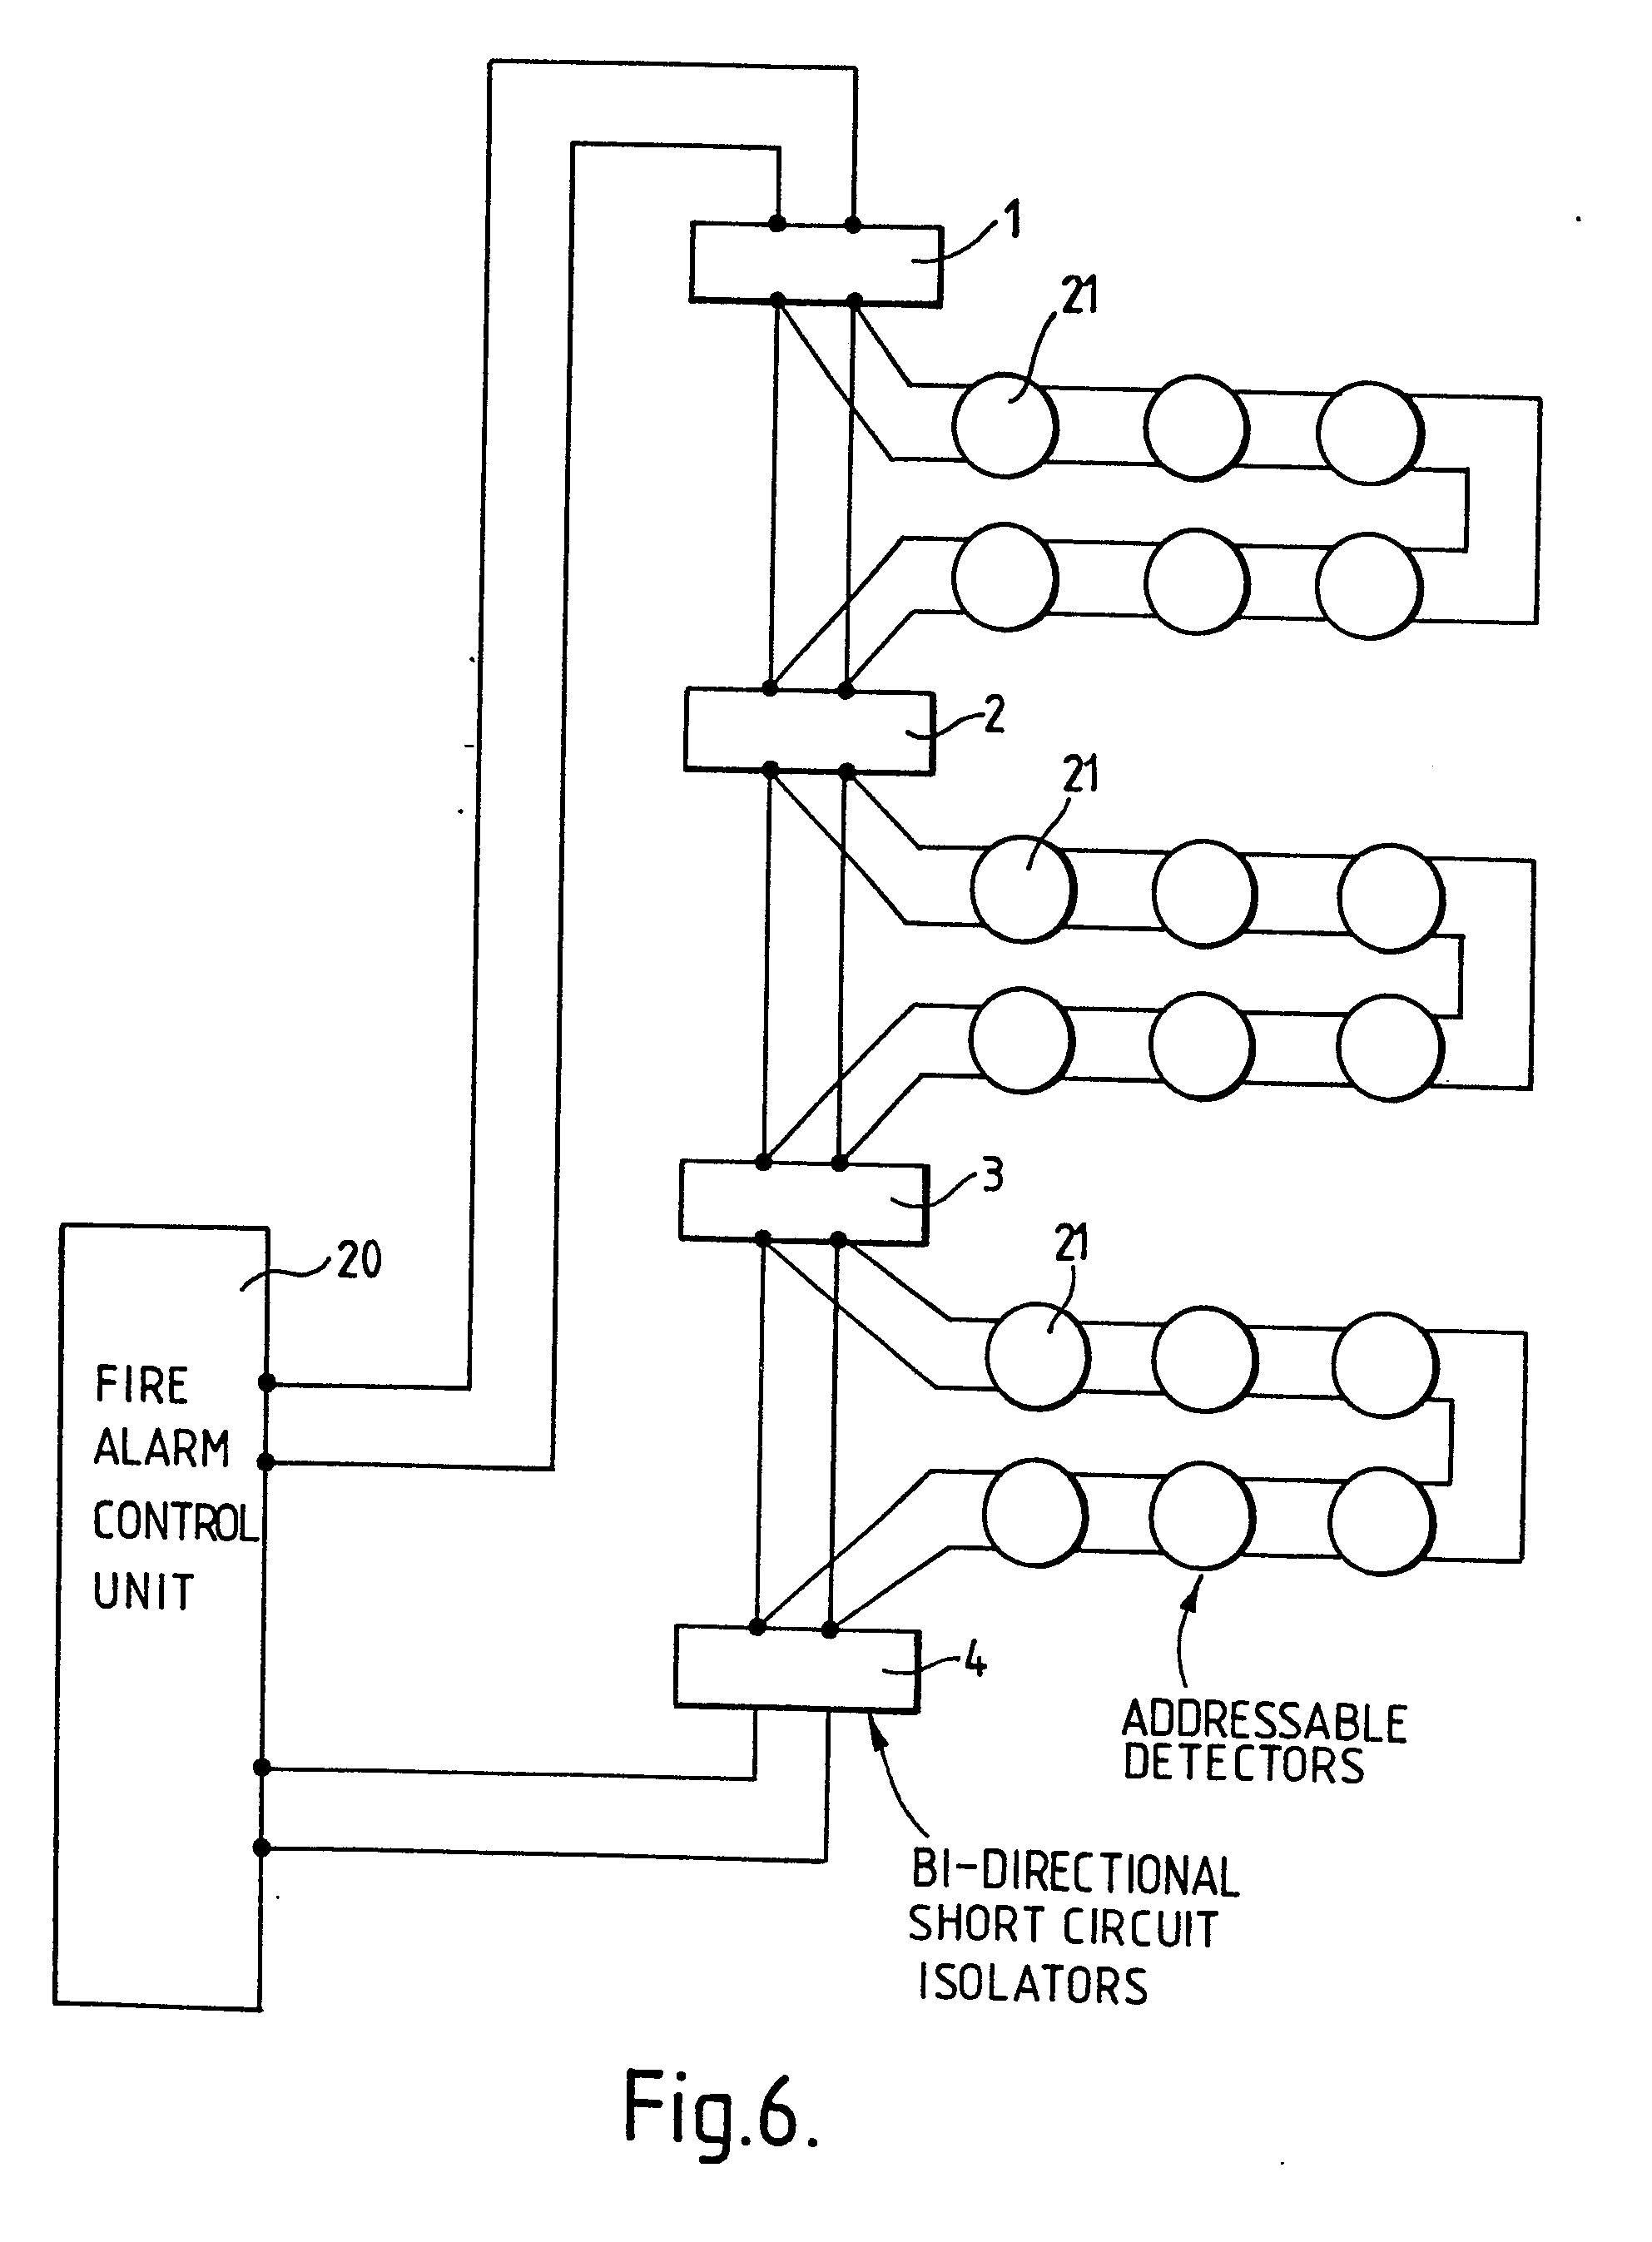 imgf0005 addressable fire alarm circuit diagram circuit and schematics fire alarm wiring schematic at mr168.co